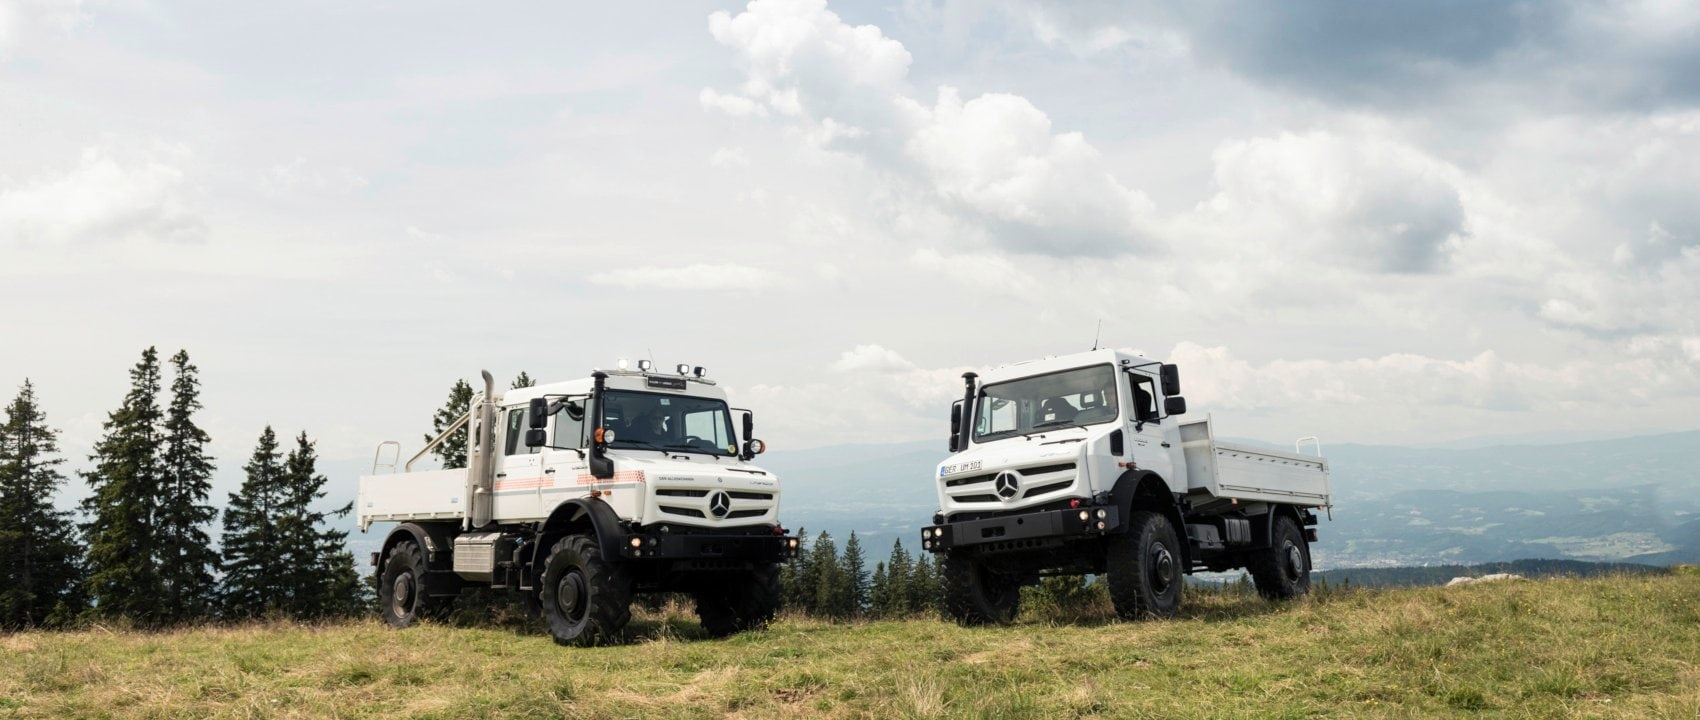 Two Mercedes-Benz Unimogs U 5023 in arctic white on a hill.